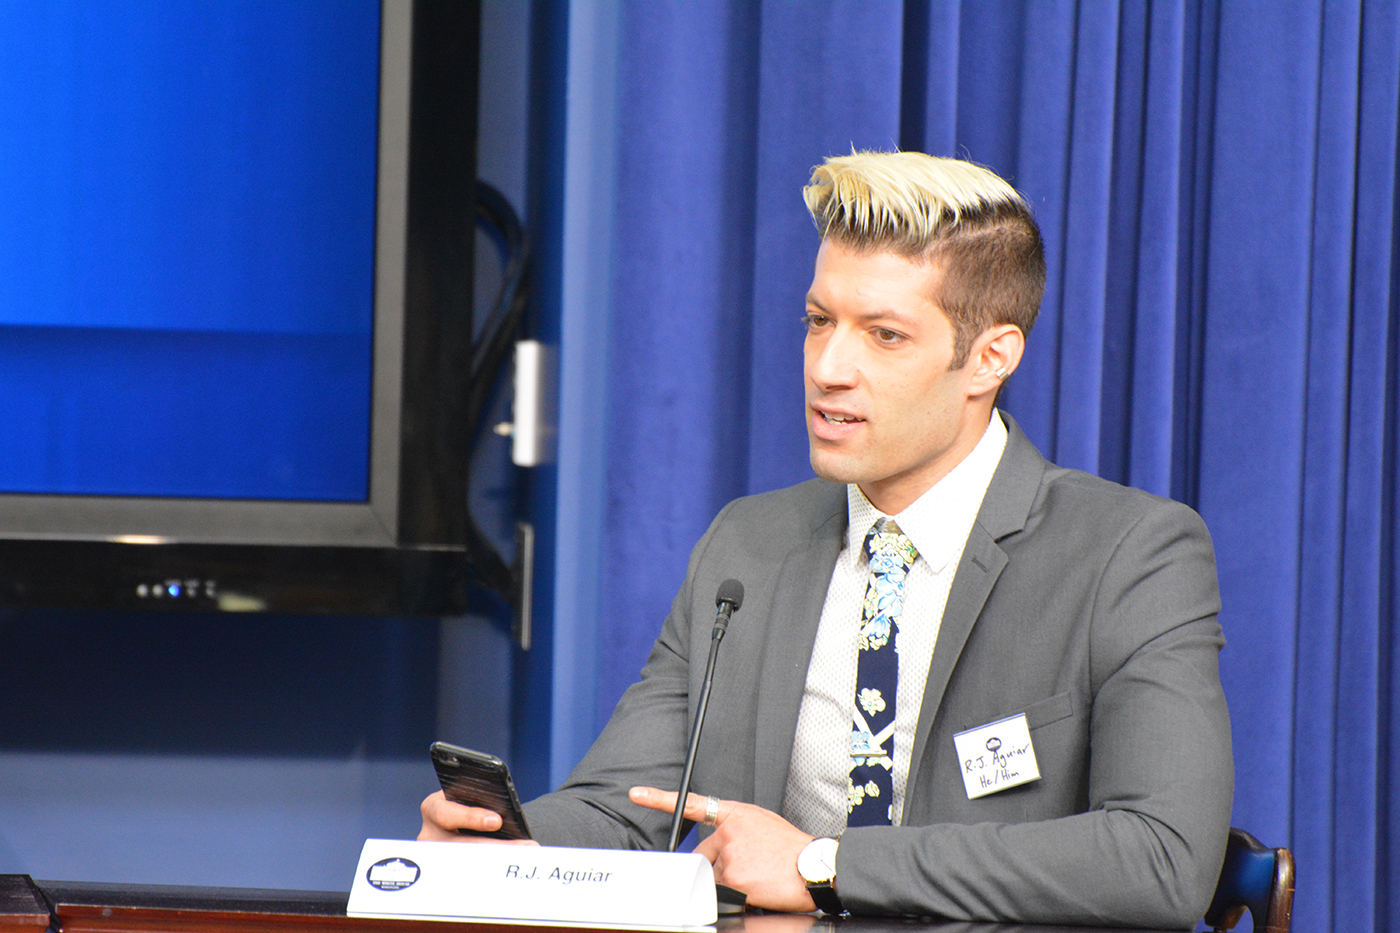 R.J. Aguiar, an advocate, writer, and popular YouTube personality, is also a #BiStories participant. He spoke on the panel at the White House about his experience facing biphobia from within the gay community.